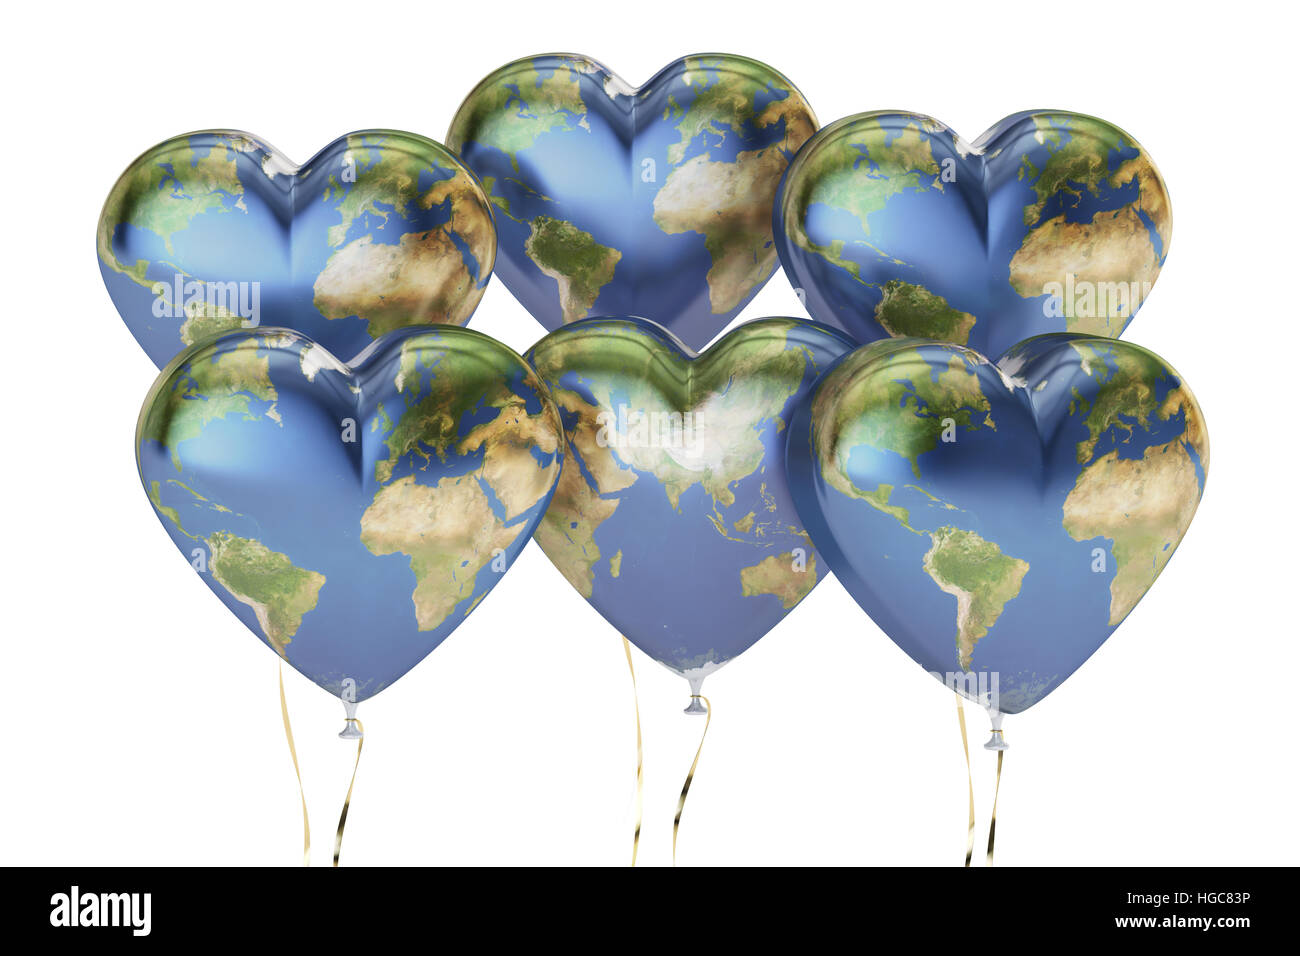 Balloons in the shape of hearts with map of earth 3d rendering balloons in the shape of hearts with map of earth 3d rendering isolated on white background gumiabroncs Gallery